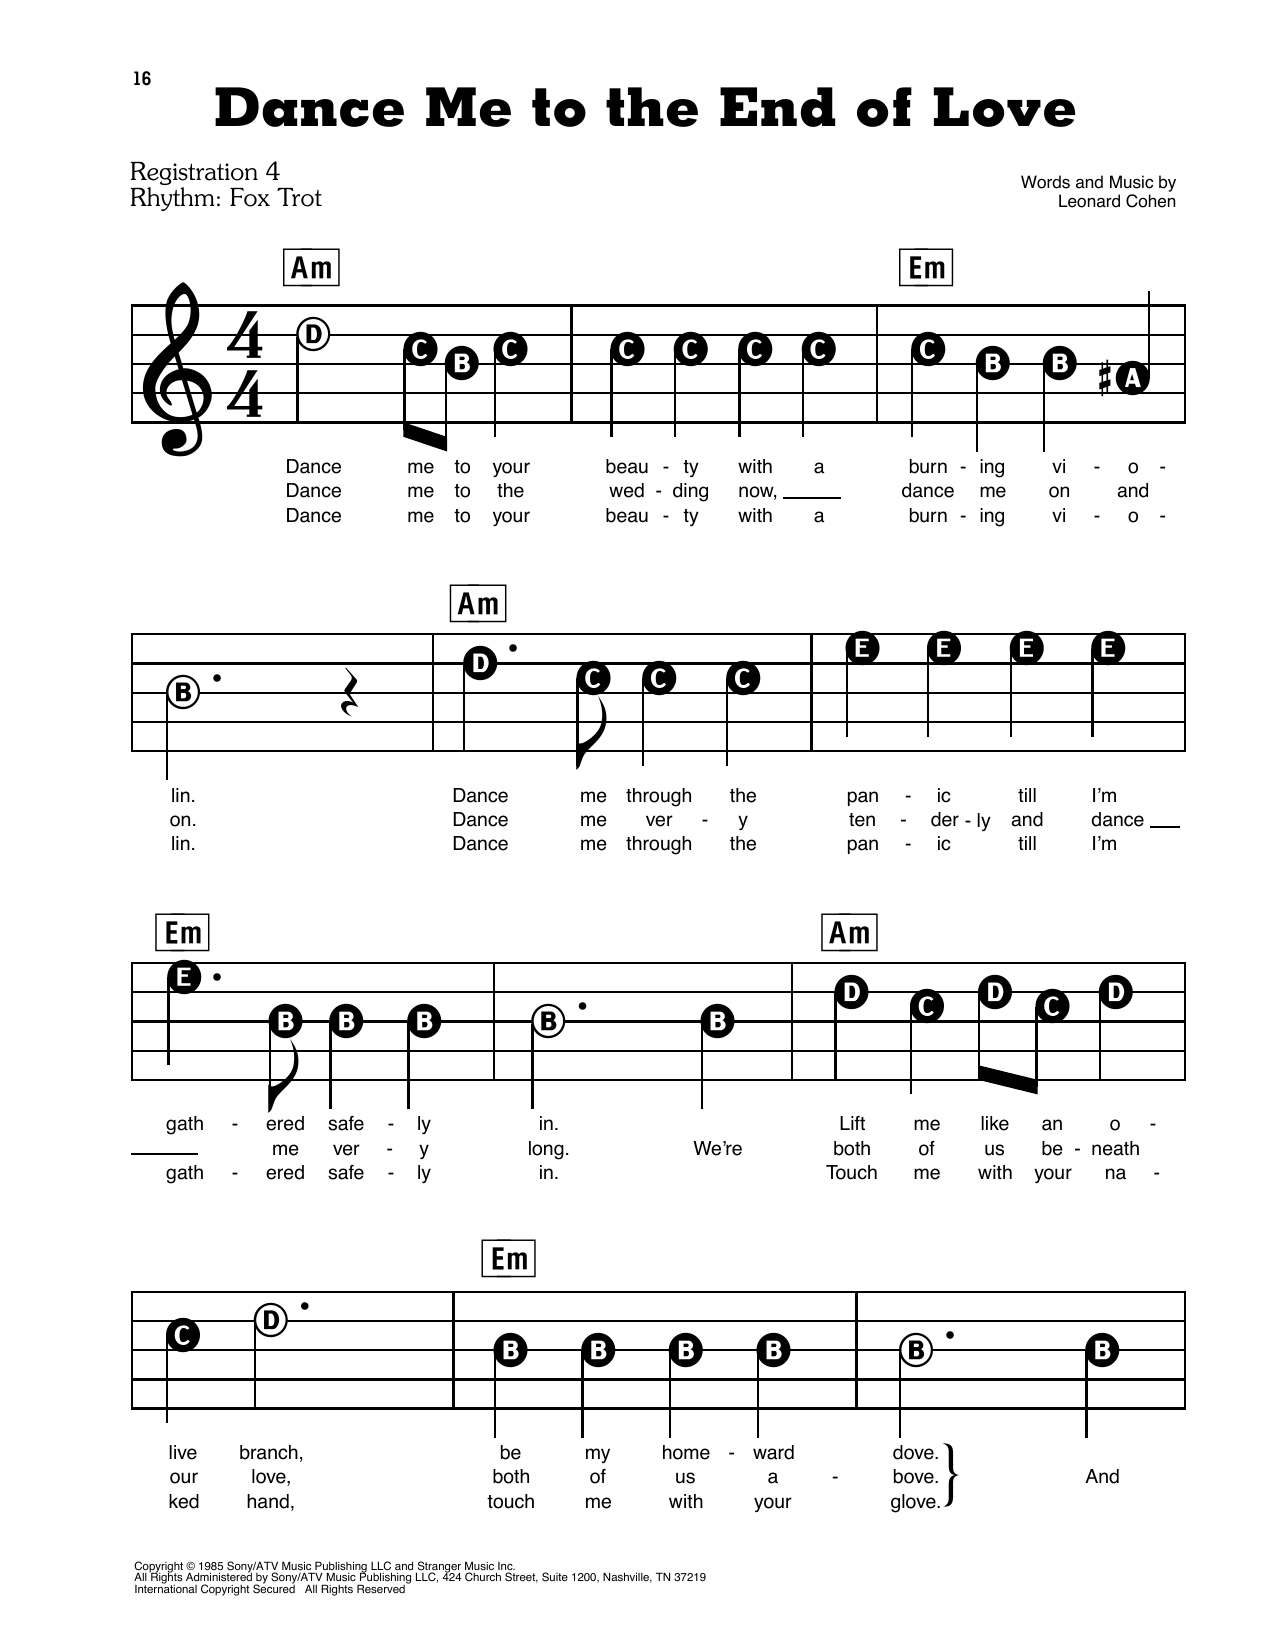 Game Of Love Sheets leonard cohen 'dance me to the end of love' sheet music notes, chords |  download printable e-z play today - sku: 425916